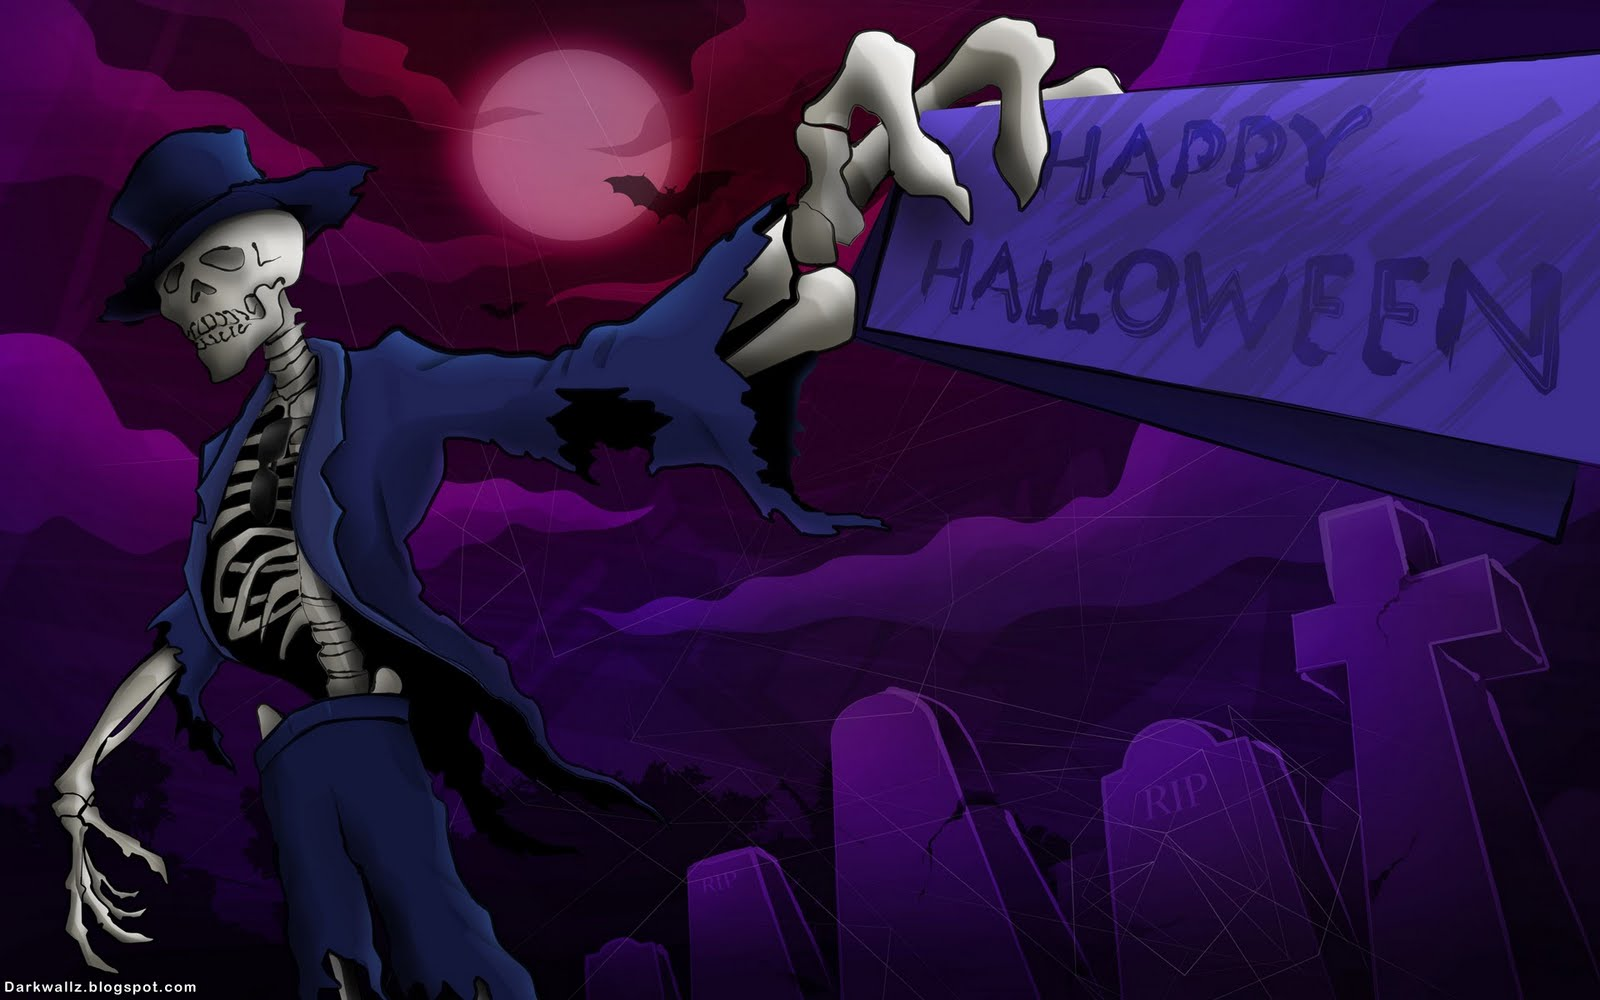 Halloween Wallpapers 70 | Dark Wallpaper Download